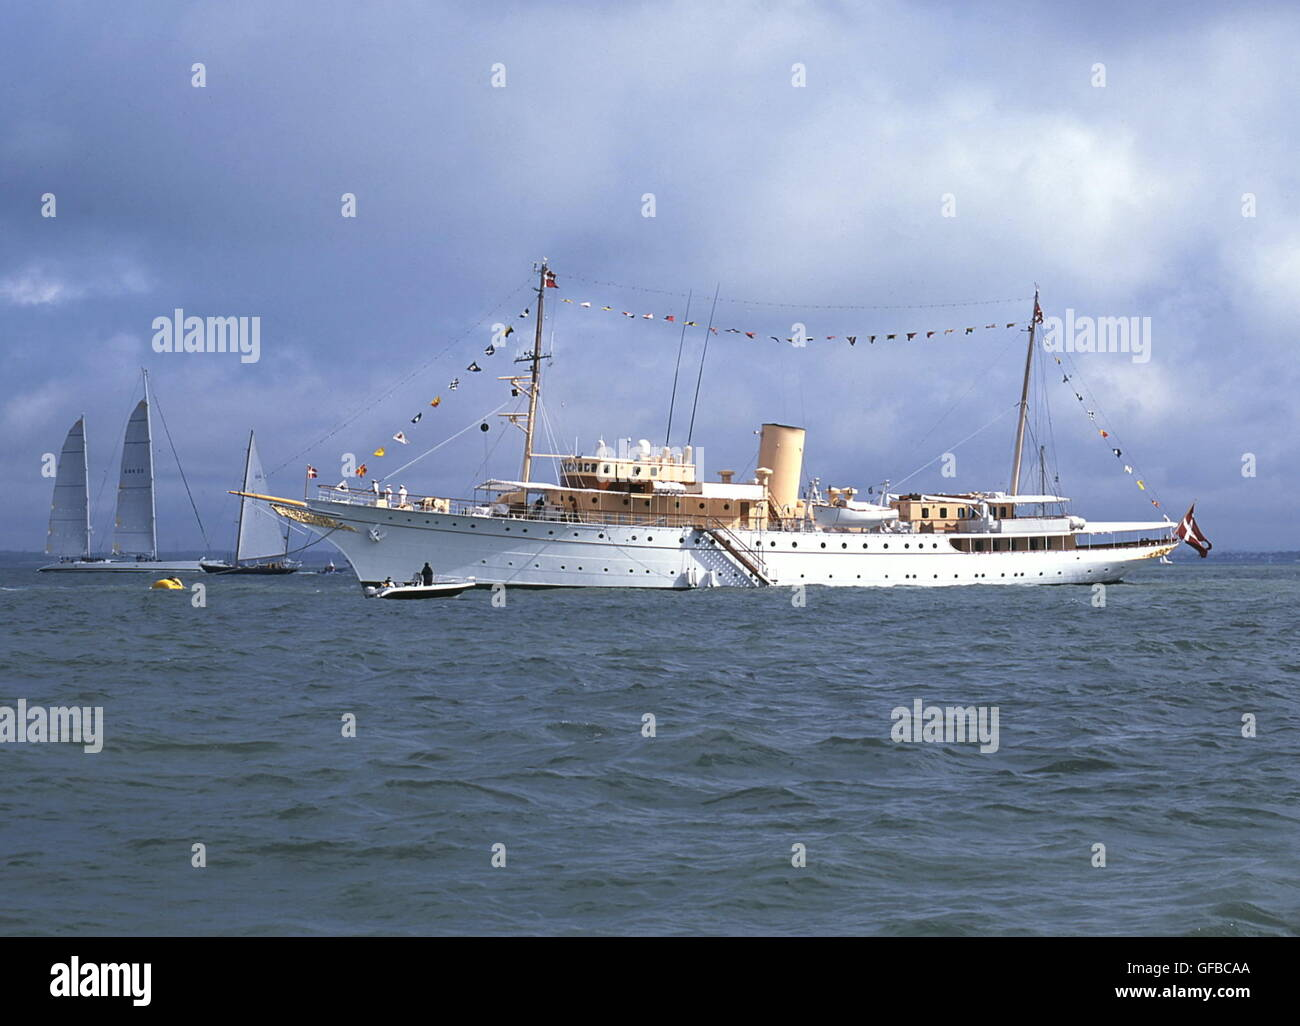 AJAXNETPHOTO. 19TH AUGUST, 2001, COWES, ENGLAND. - DANISH ROYAL YACHT - HDMY DANNEBROG DRESSED OVERALL, ANCHORED - Stock Image